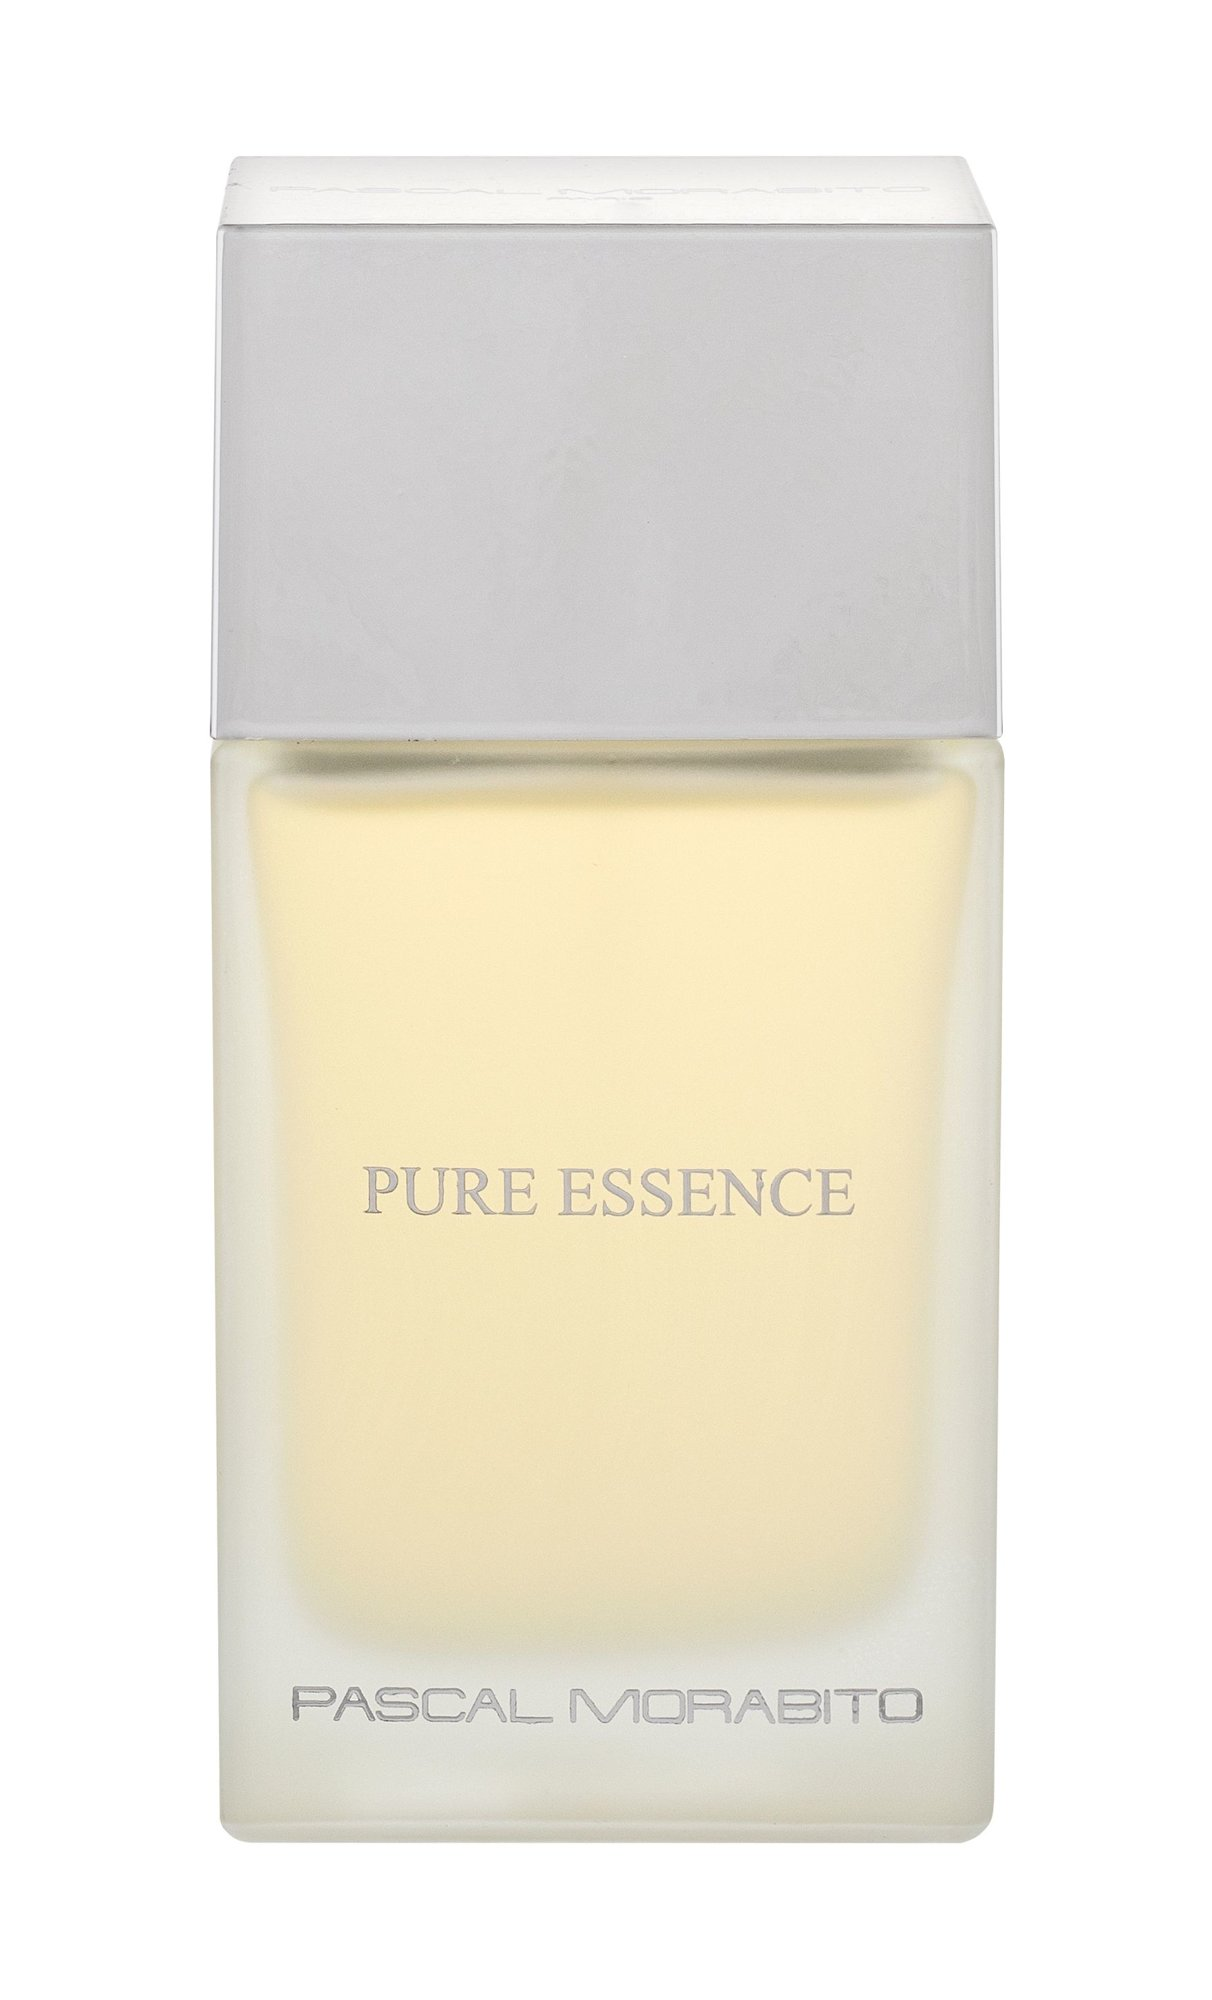 Pascal Morabito Pure Essence Eau de Toilette 100ml